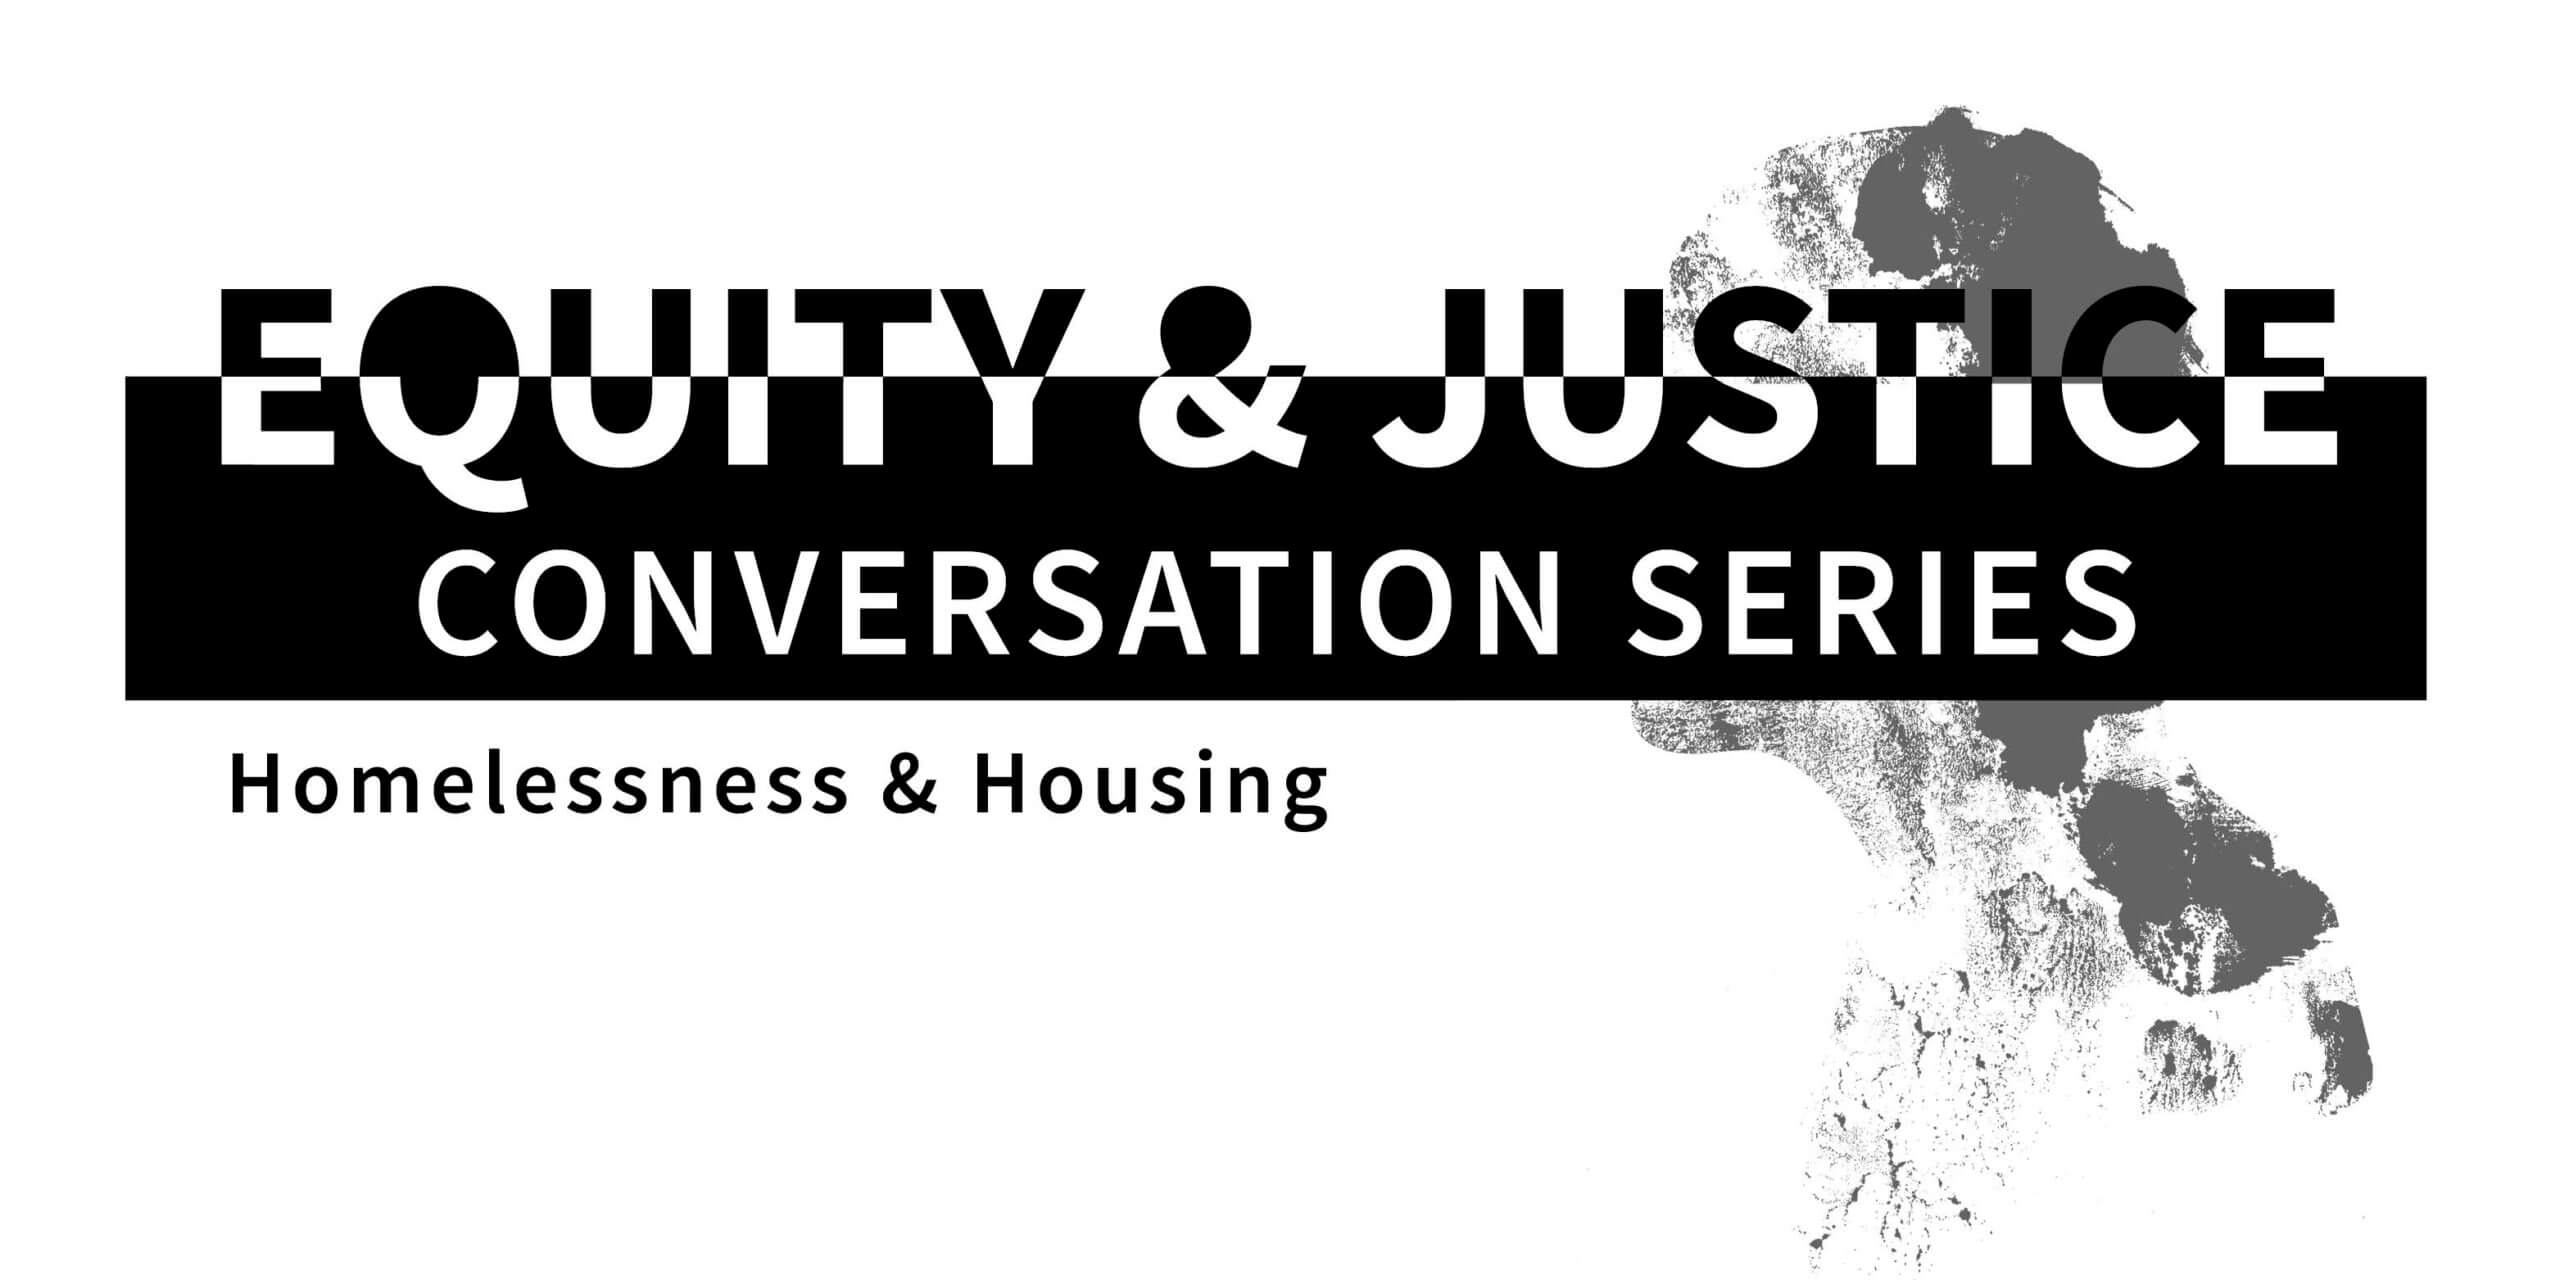 Equity & Justice Conversation Series logo